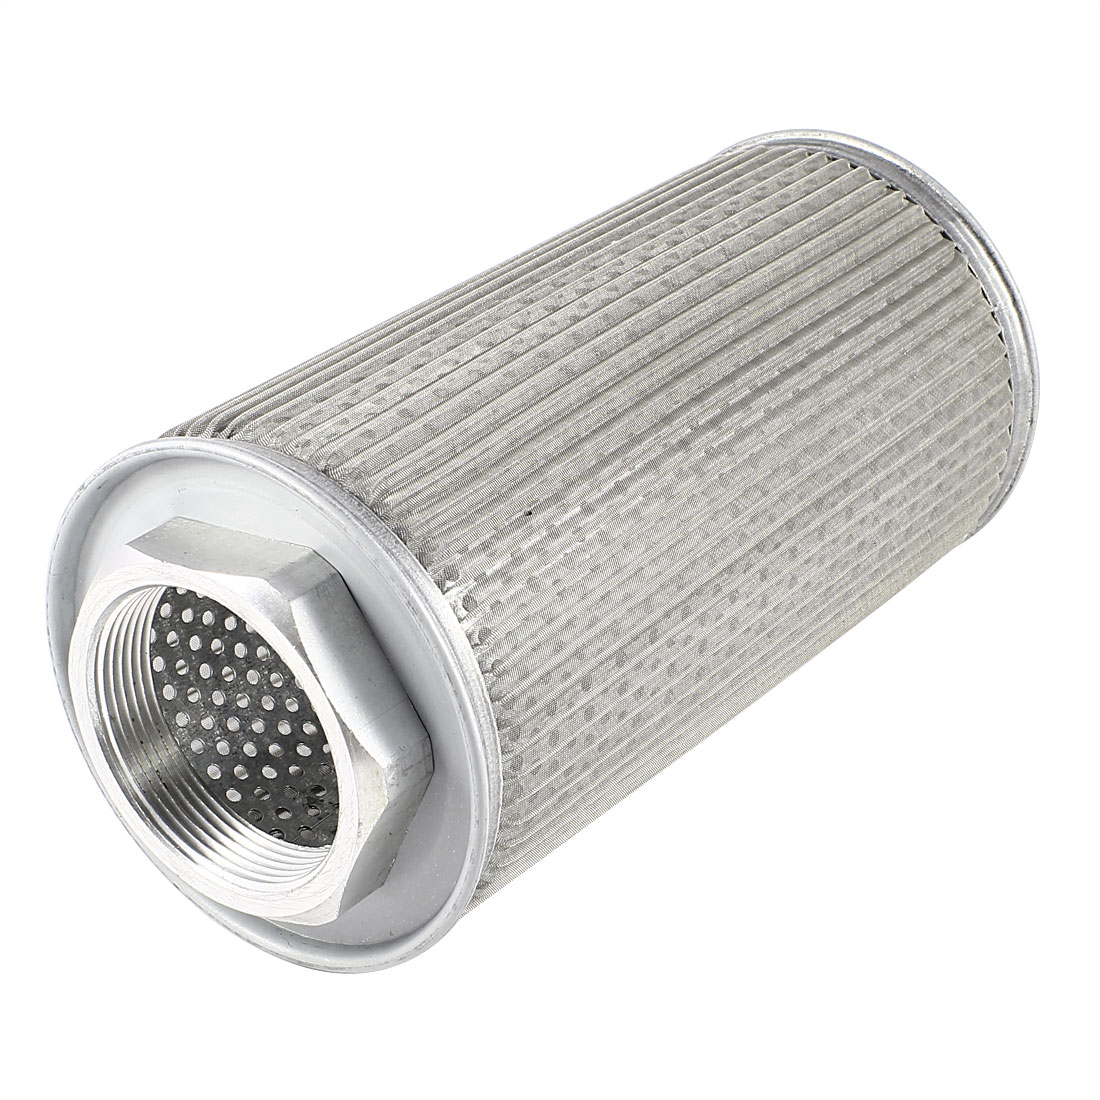 Metal Hydraulic Lubricating Suction Strainer Filler Breather Filters MF-16 2PT